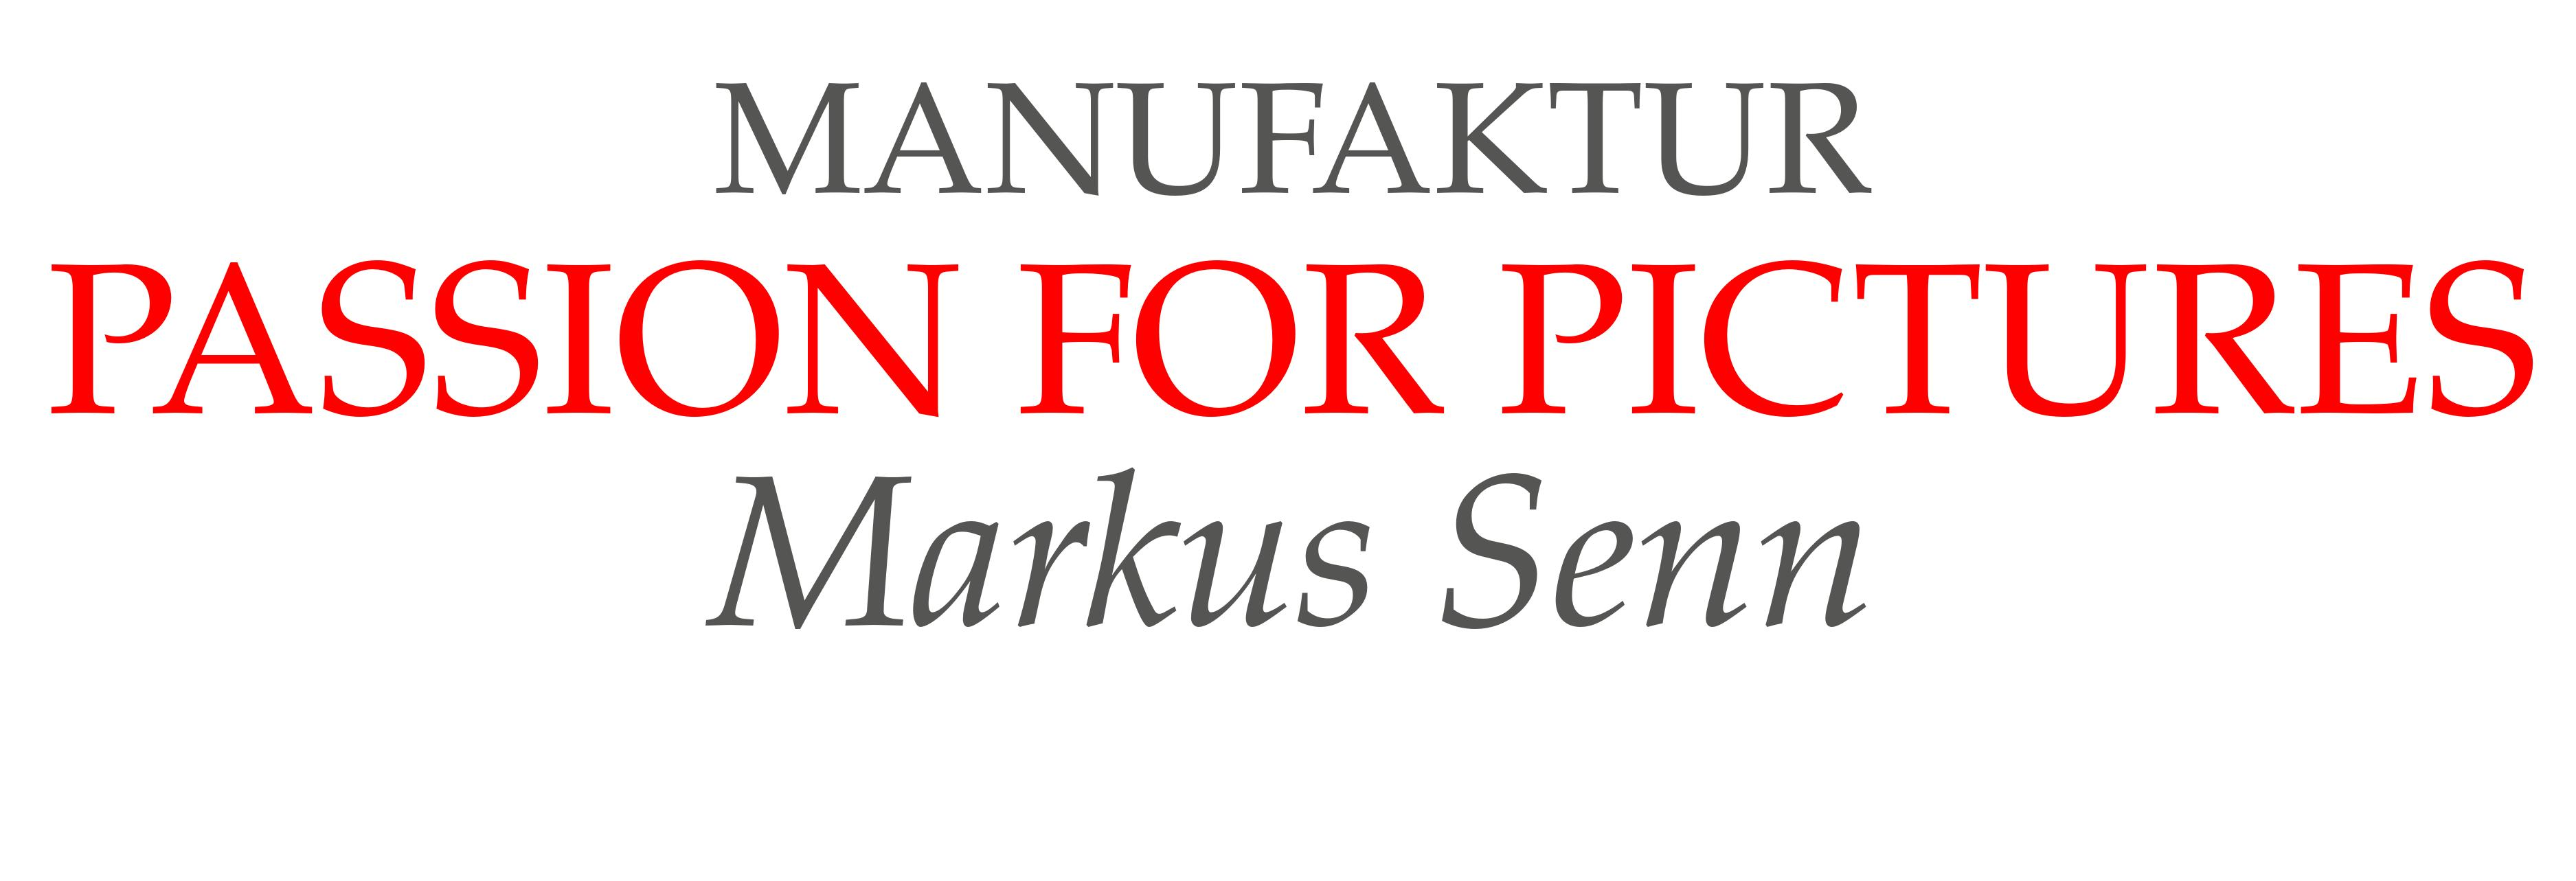 MANUFAKTUR PASSION FOR PICTURES      –   by  Markus Senn